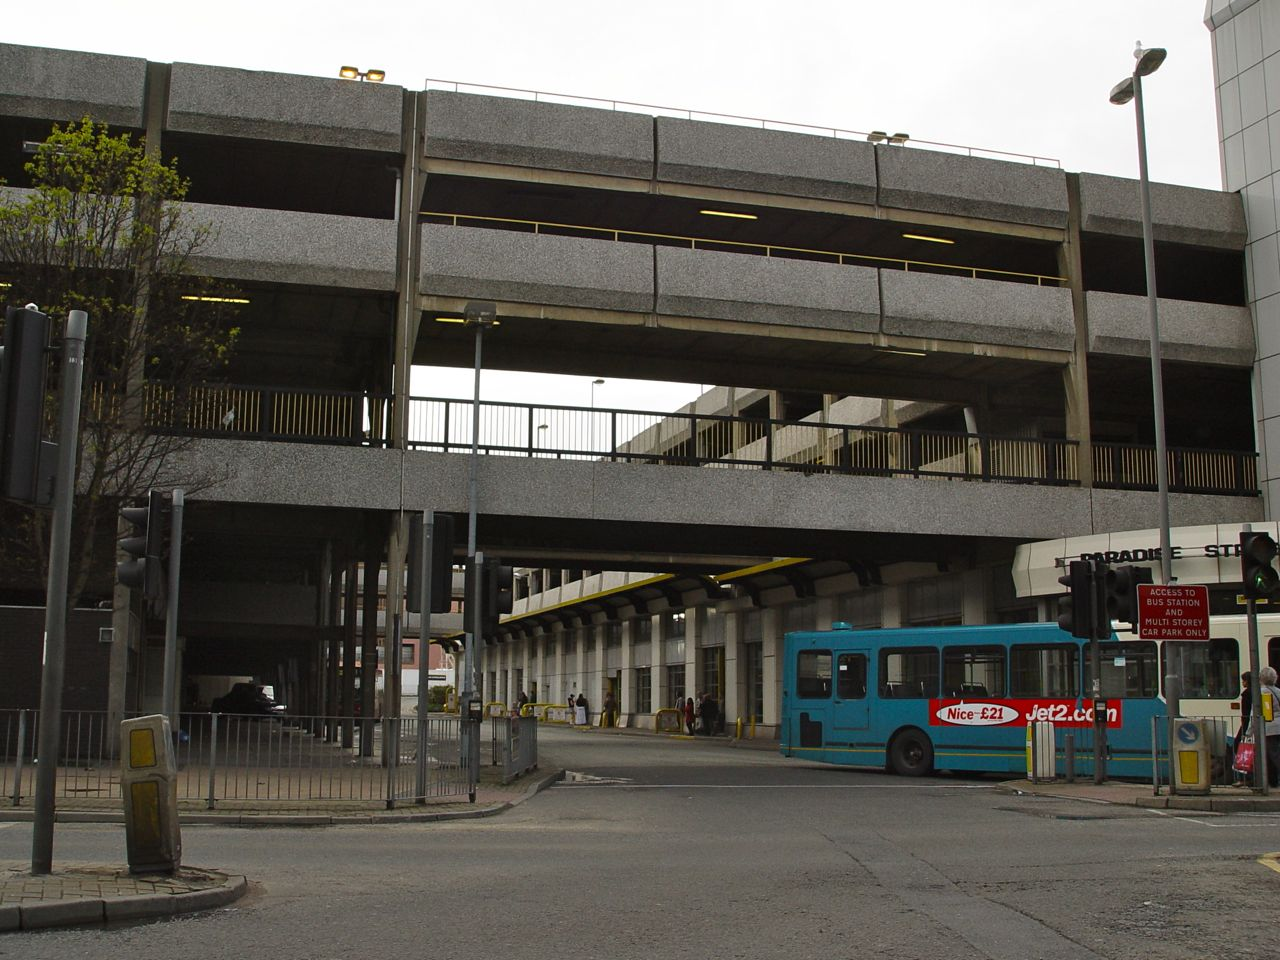 preston bus station and car park essay An arrow directs motorists in the car park the bus station was built in 1969 and designed by keith ingham and charles wilson  to refurbish preston bus station we have spent time and effort.